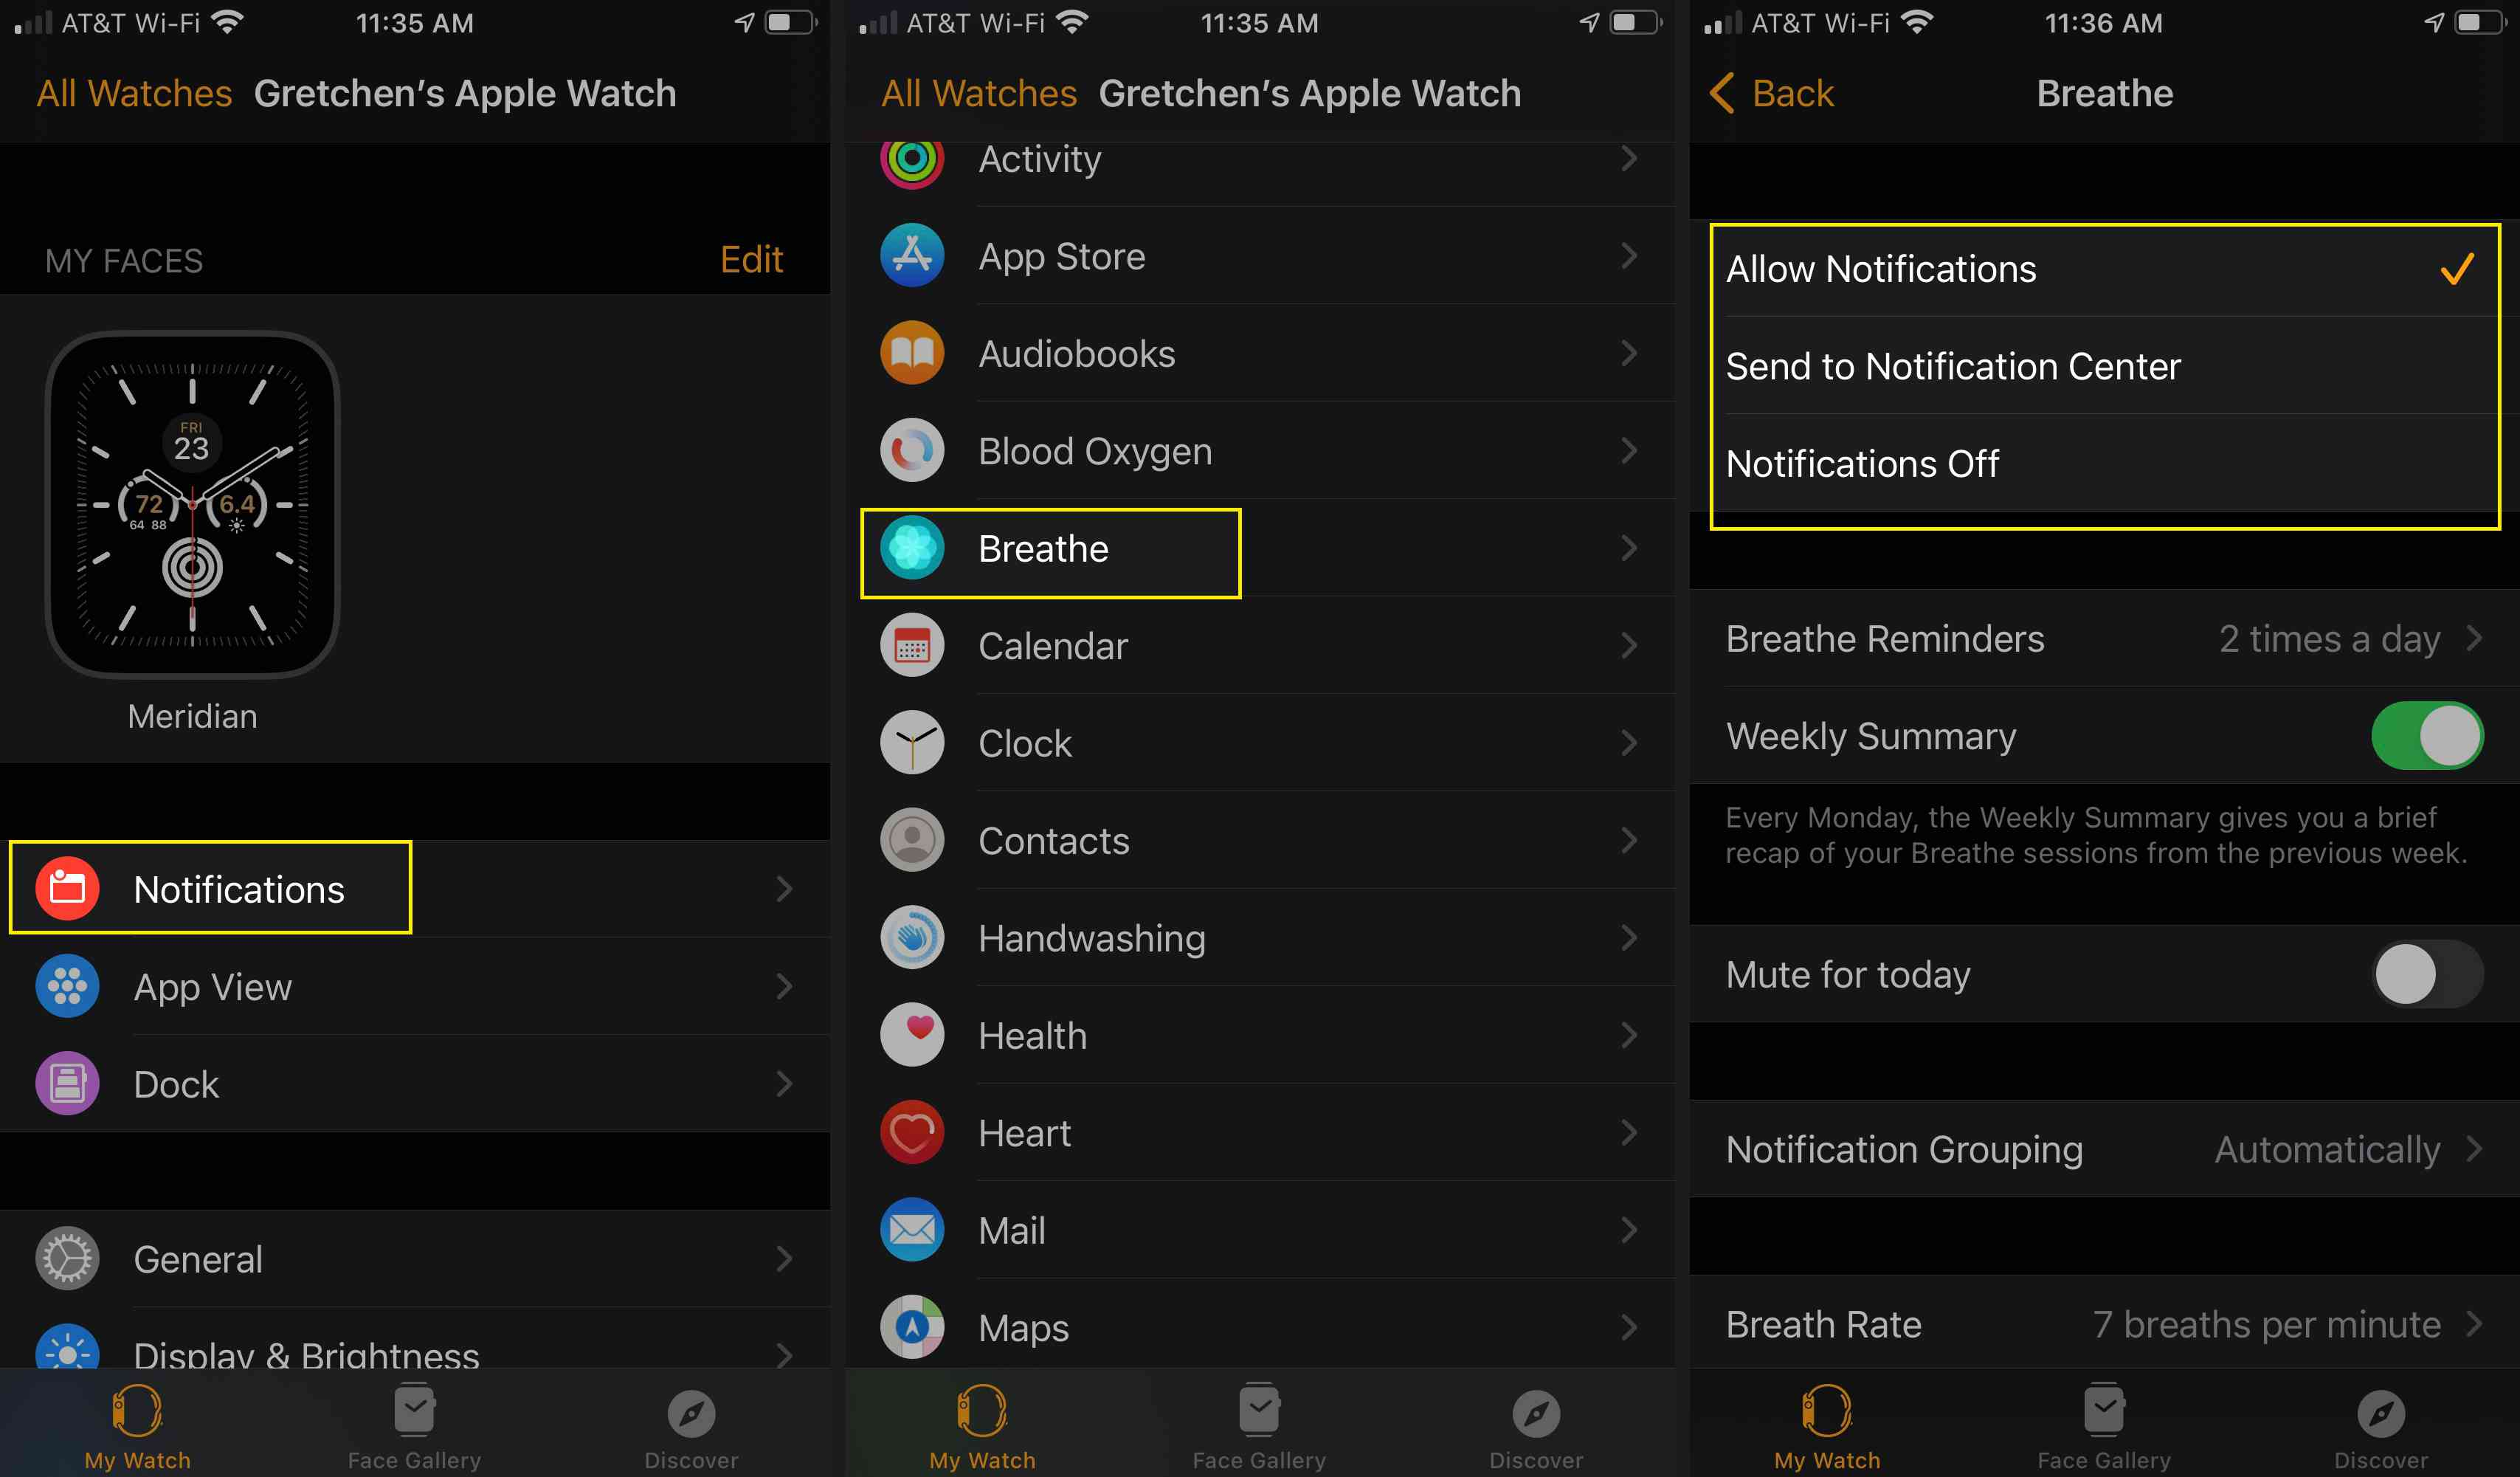 Customize your Breathe notifications on the Watch app